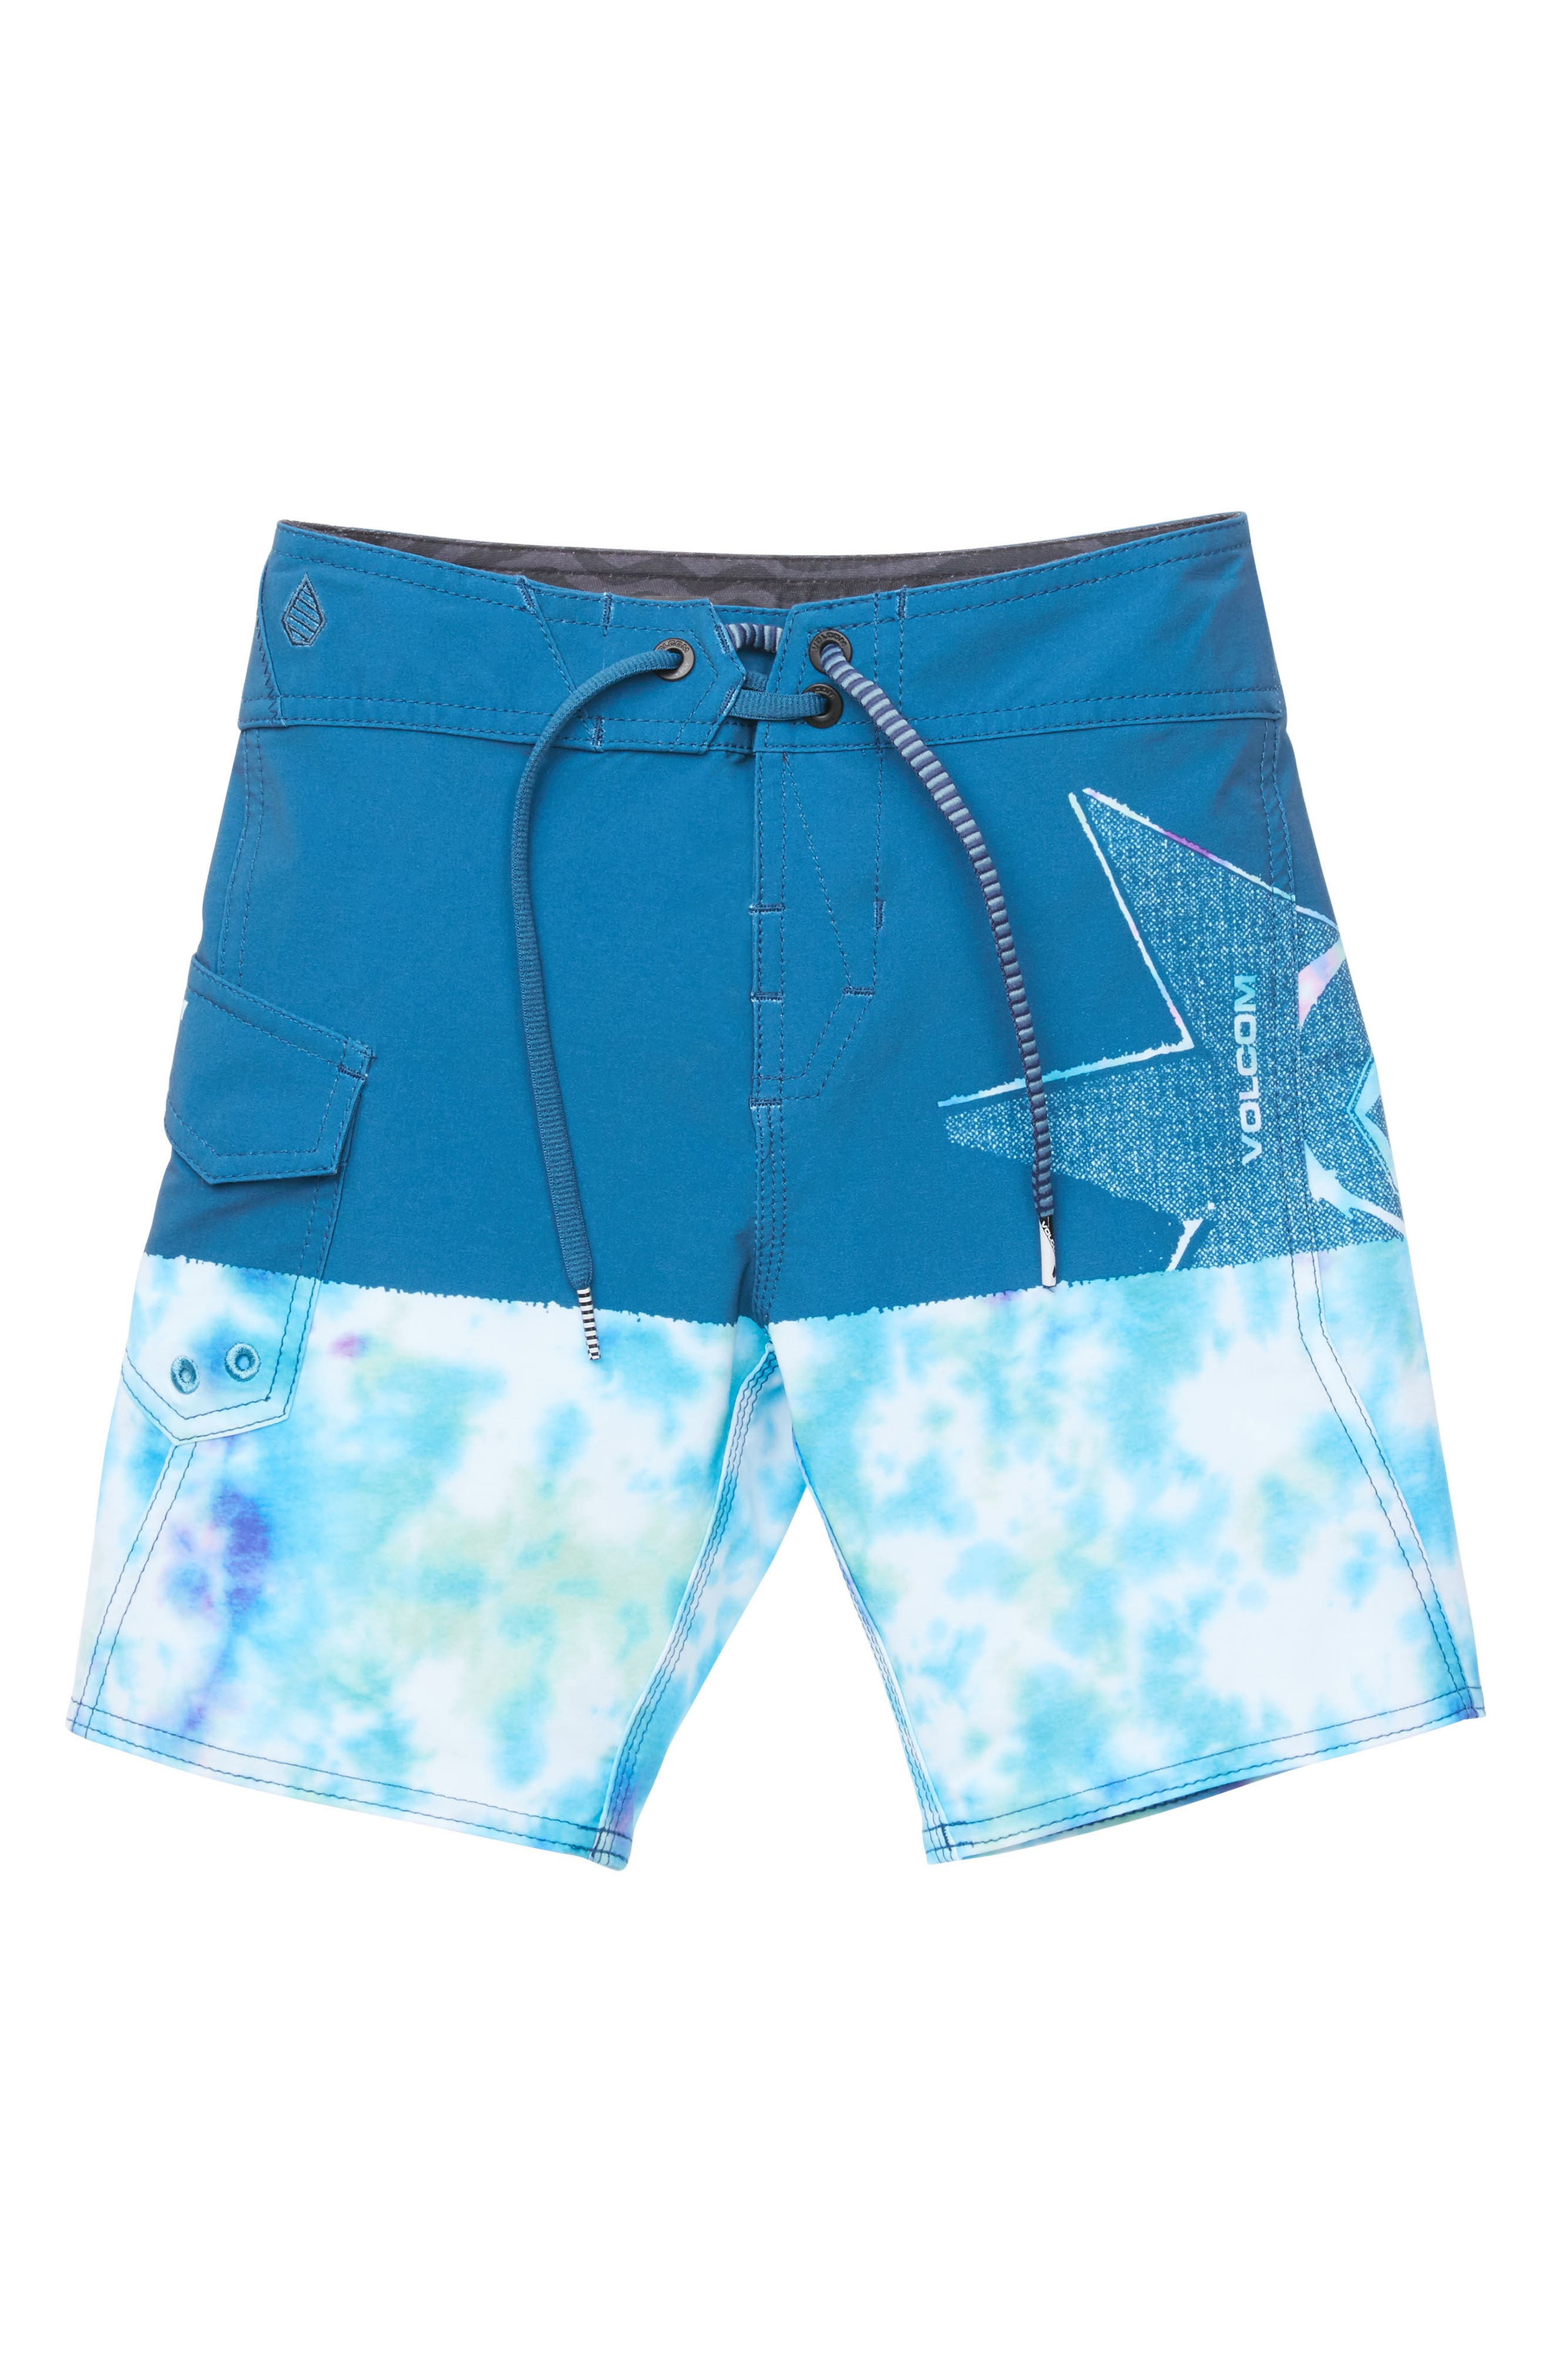 Lido Block Mod Board Shorts,                         Main,                         color, Multi